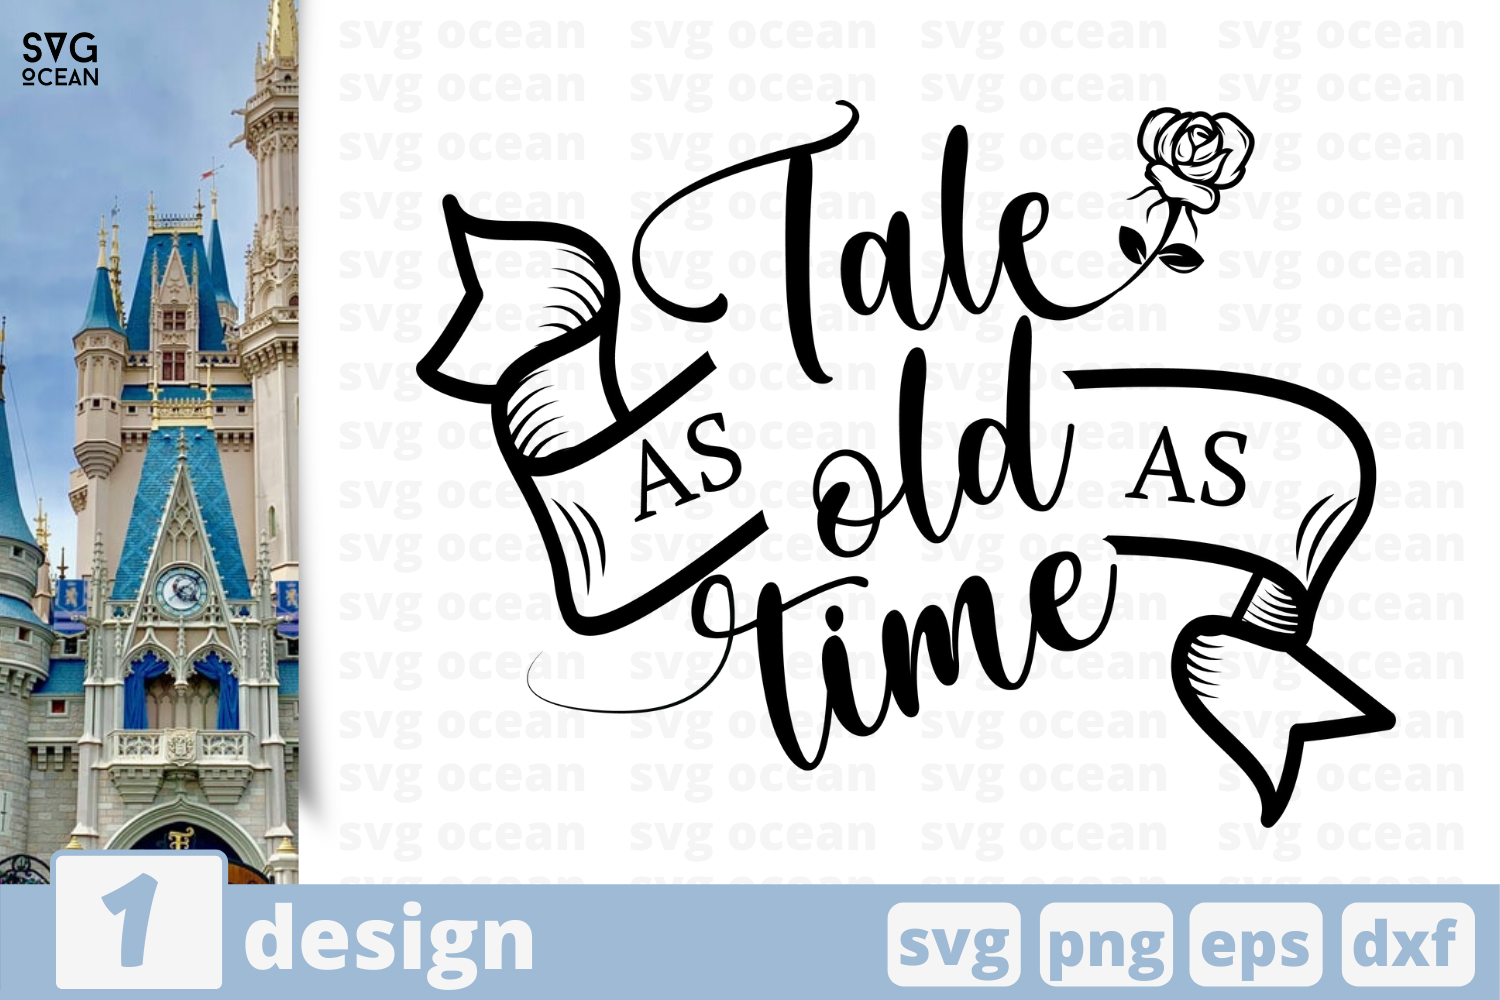 Download Free Tale As Old As Time Graphic By Svgocean Creative Fabrica for Cricut Explore, Silhouette and other cutting machines.